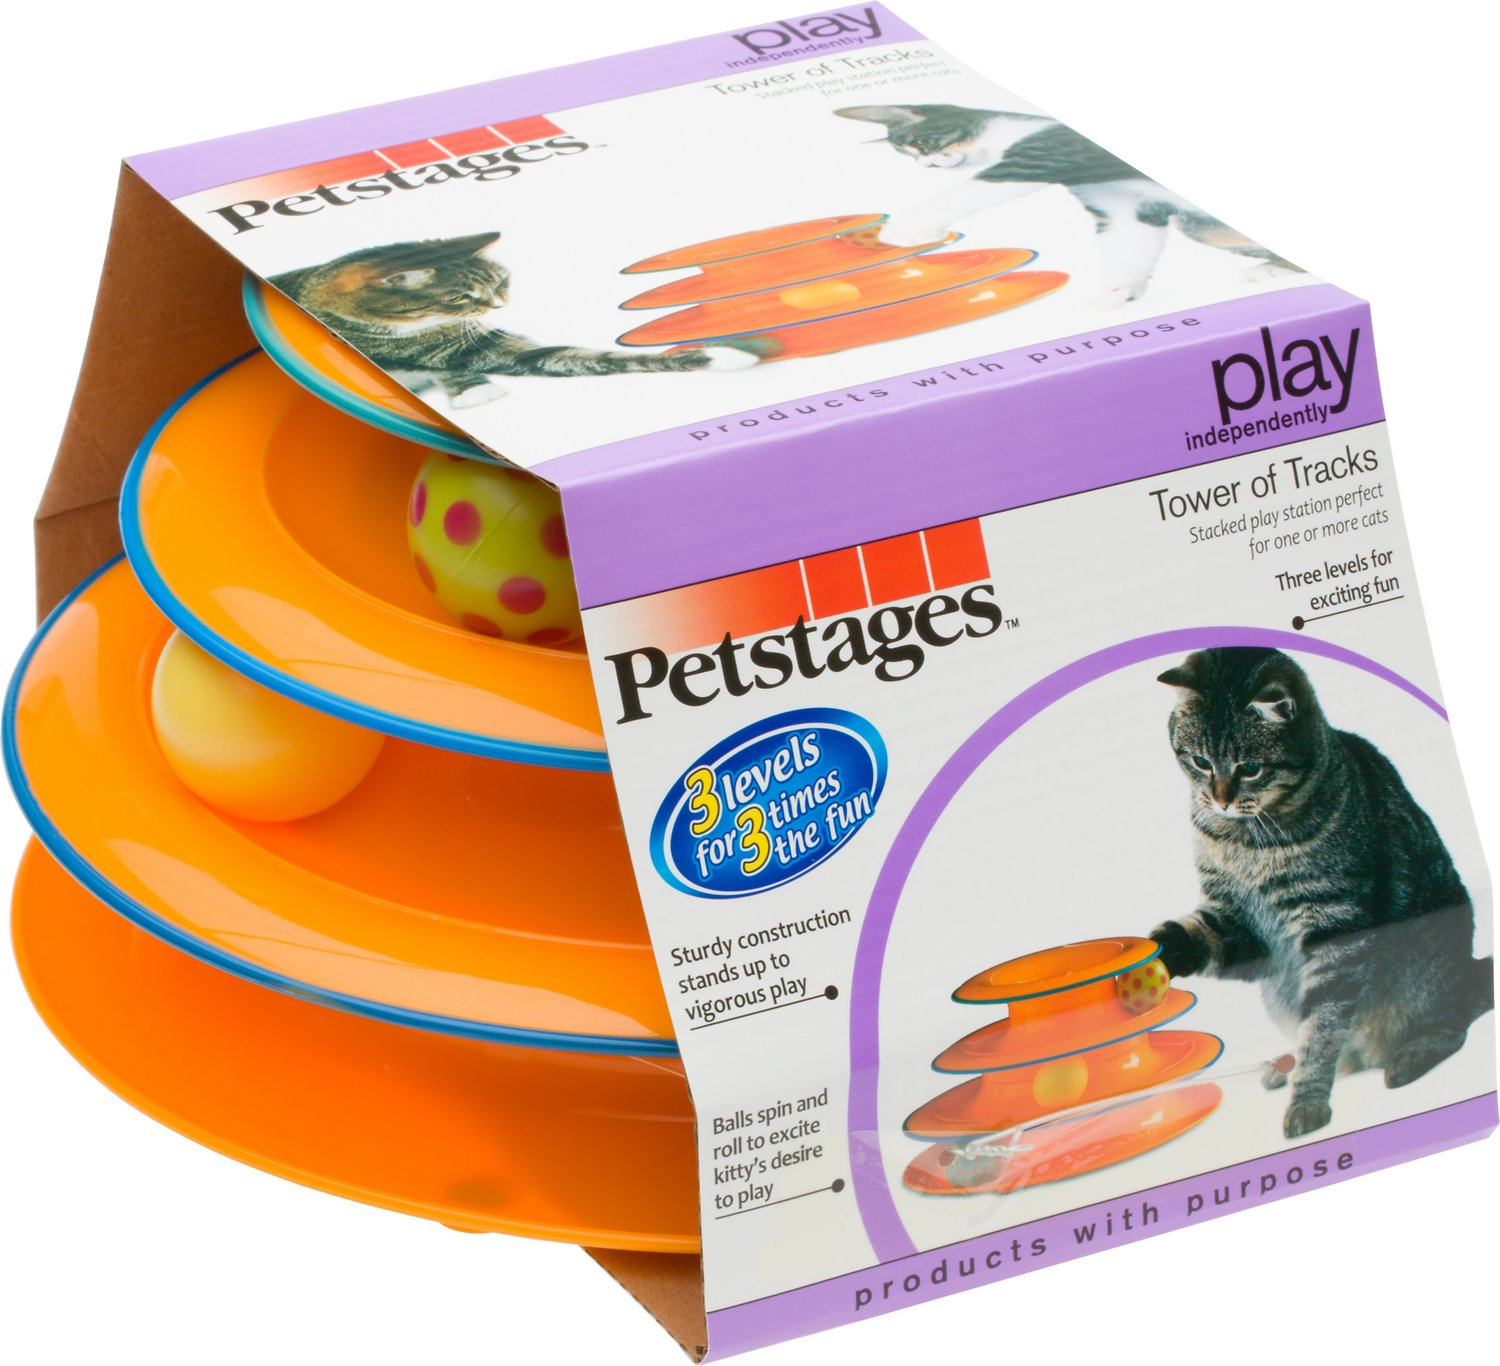 Petstages Tower of Tracks Cat Toy, 10-in